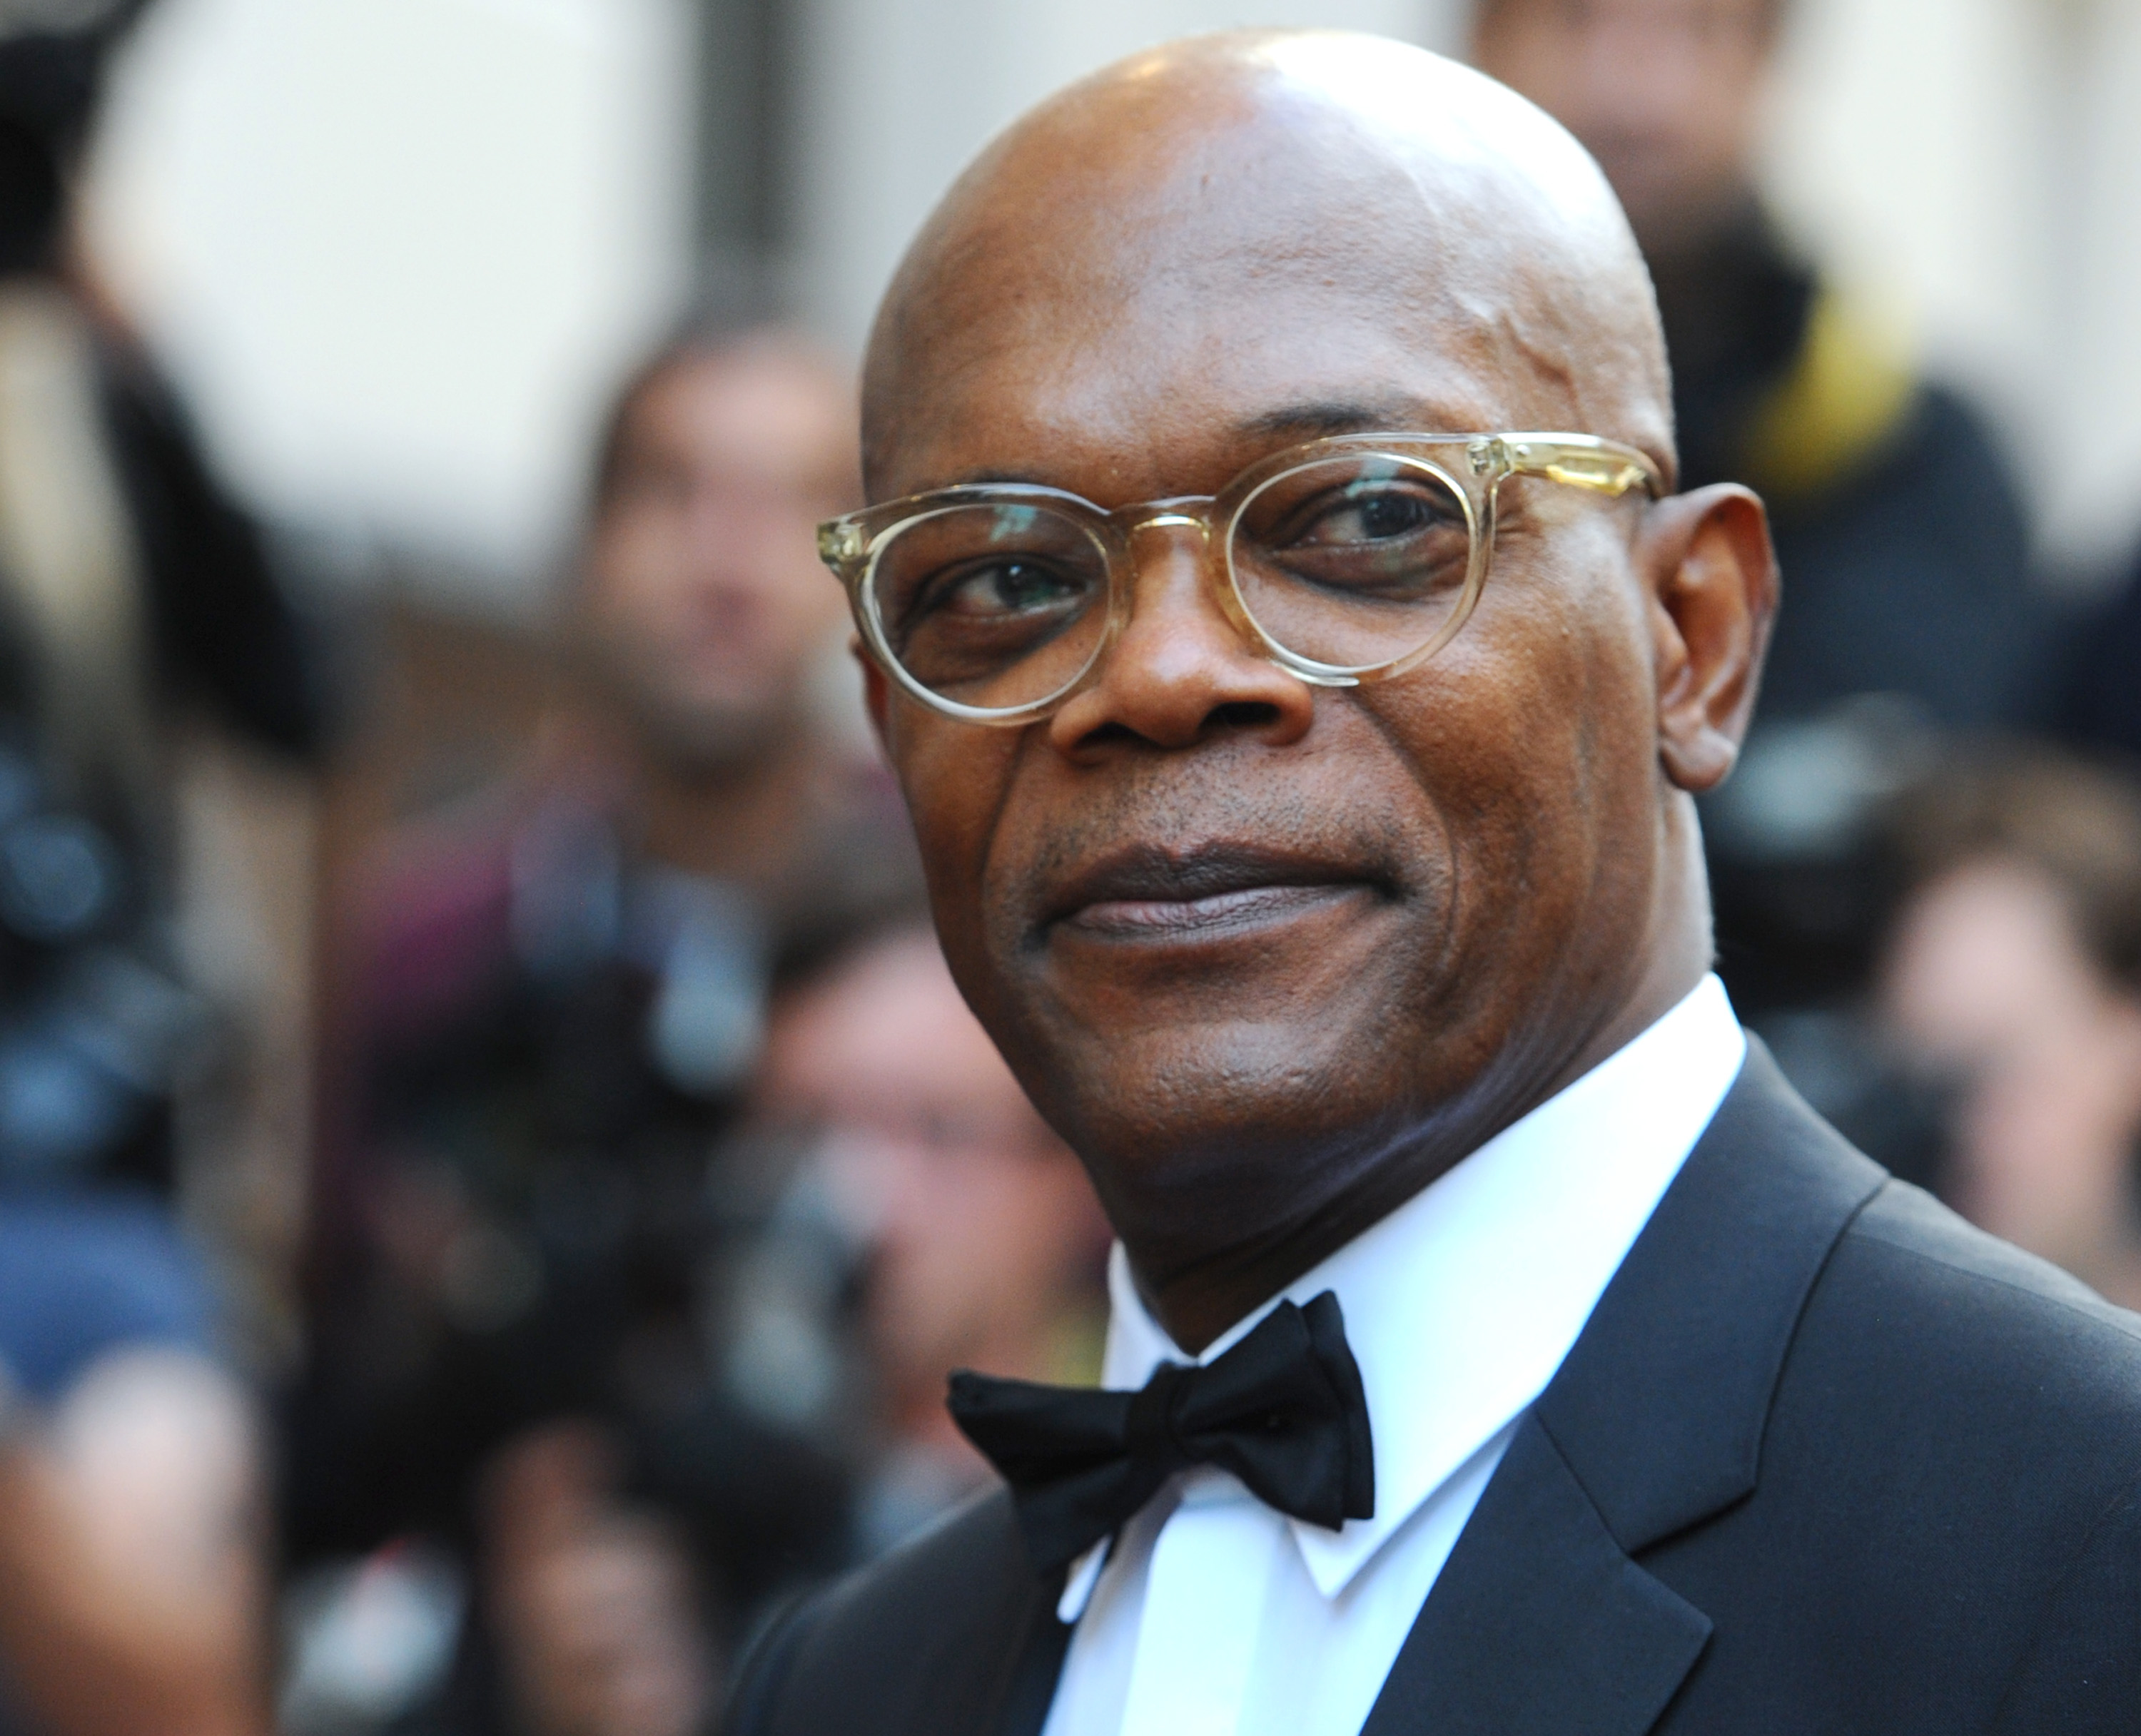 samuel l.jackson height